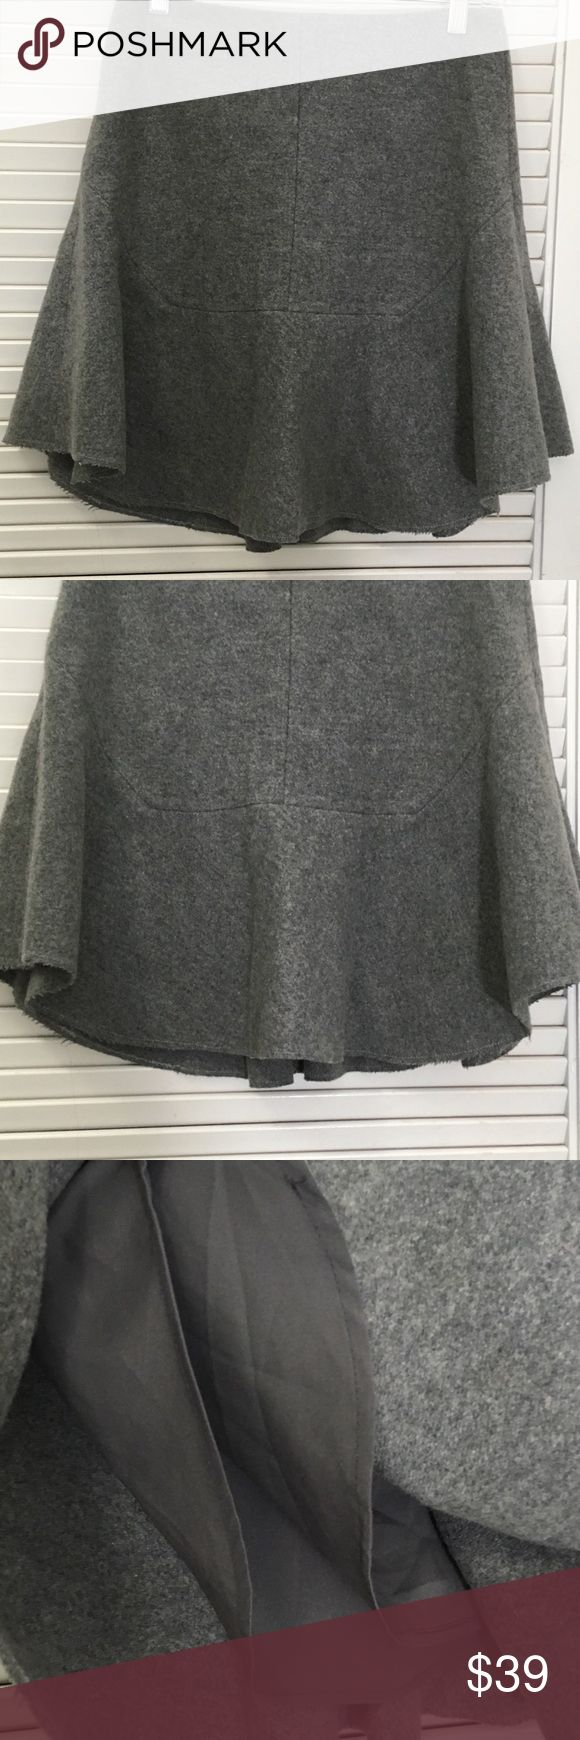 "Madewell Wool Blend Skirt A-Line Gray Madewell Atelier Skirt Grey.  A structured wool A-line skirt with a subtle ruffle at the hem—it can go day to night, no problem.   Back zip.  Dry clean. Import. Beautiful Madewell women's Skirt.  Color is Heather Gray. Material is 80% Wool with a 20% nylon Blend.  Trumpet godet A-line style. Fray at the bottom is part of the design. Career Casual Modest Size 0.  Measurements: 14.5"" waist, 17.75"" length Madewell Skirts A-Line or Full"